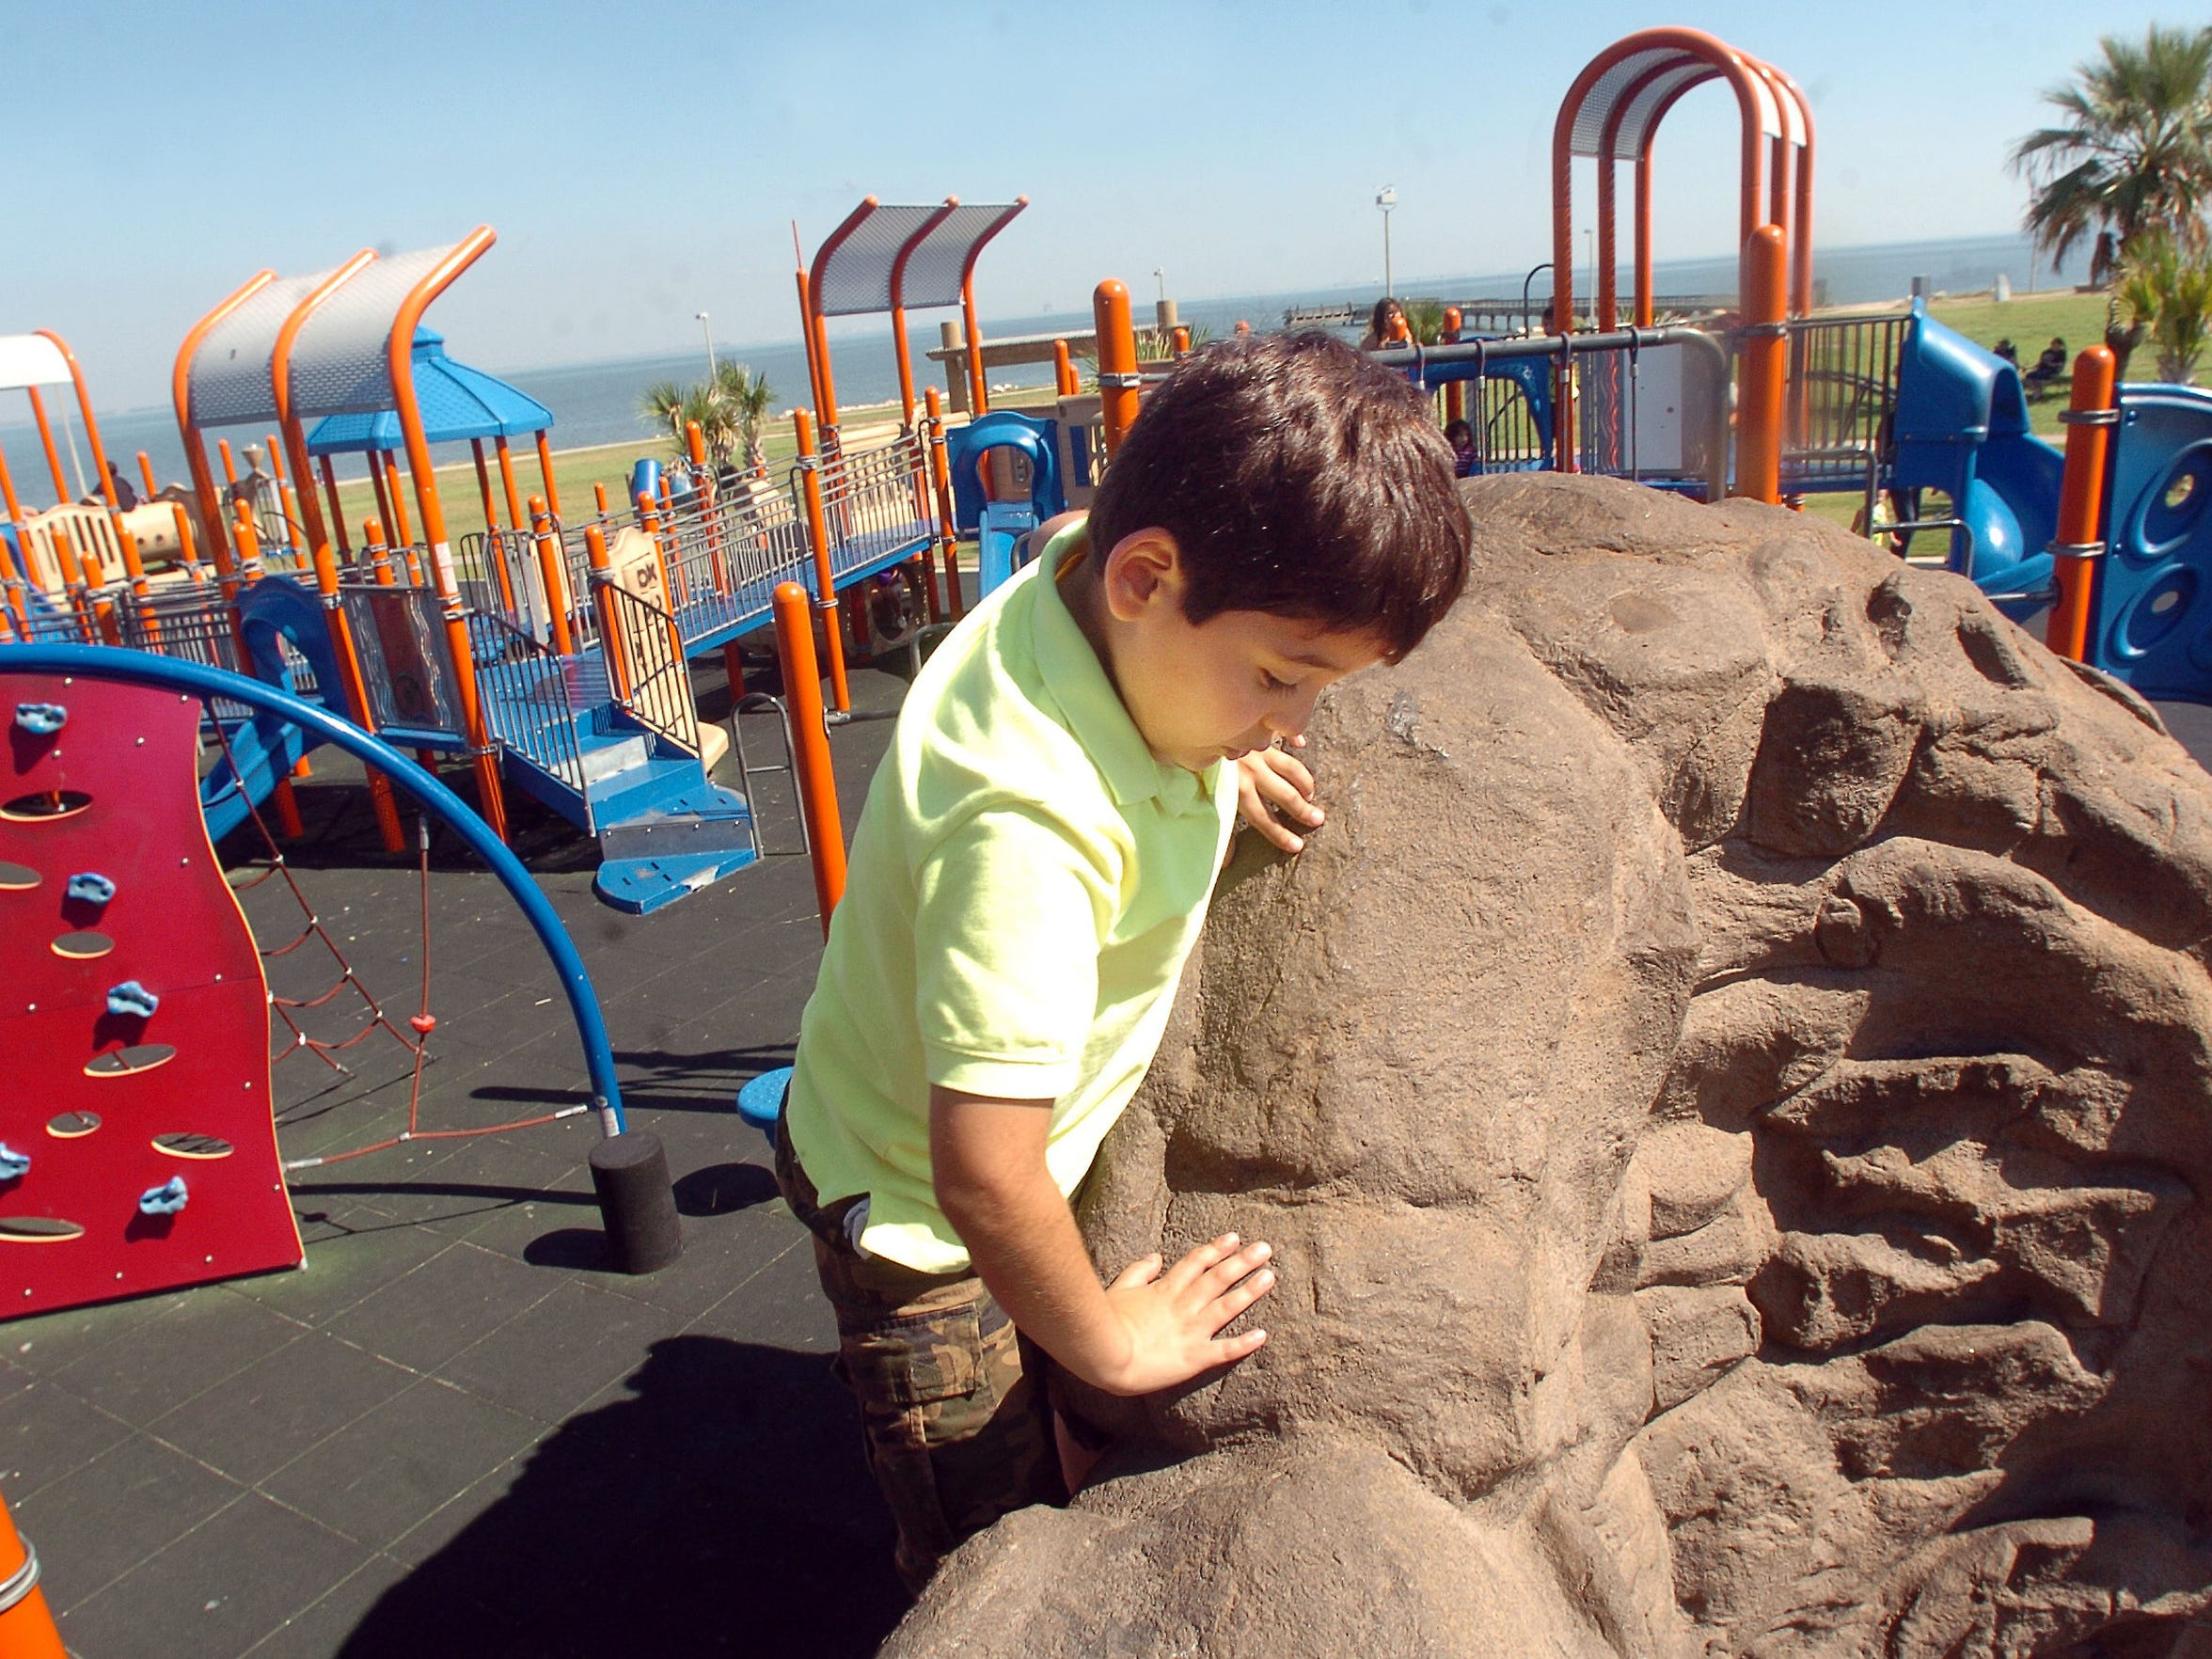 Andres Reyna, 8, climbs a rock-wall at Kids Place in November 2014.